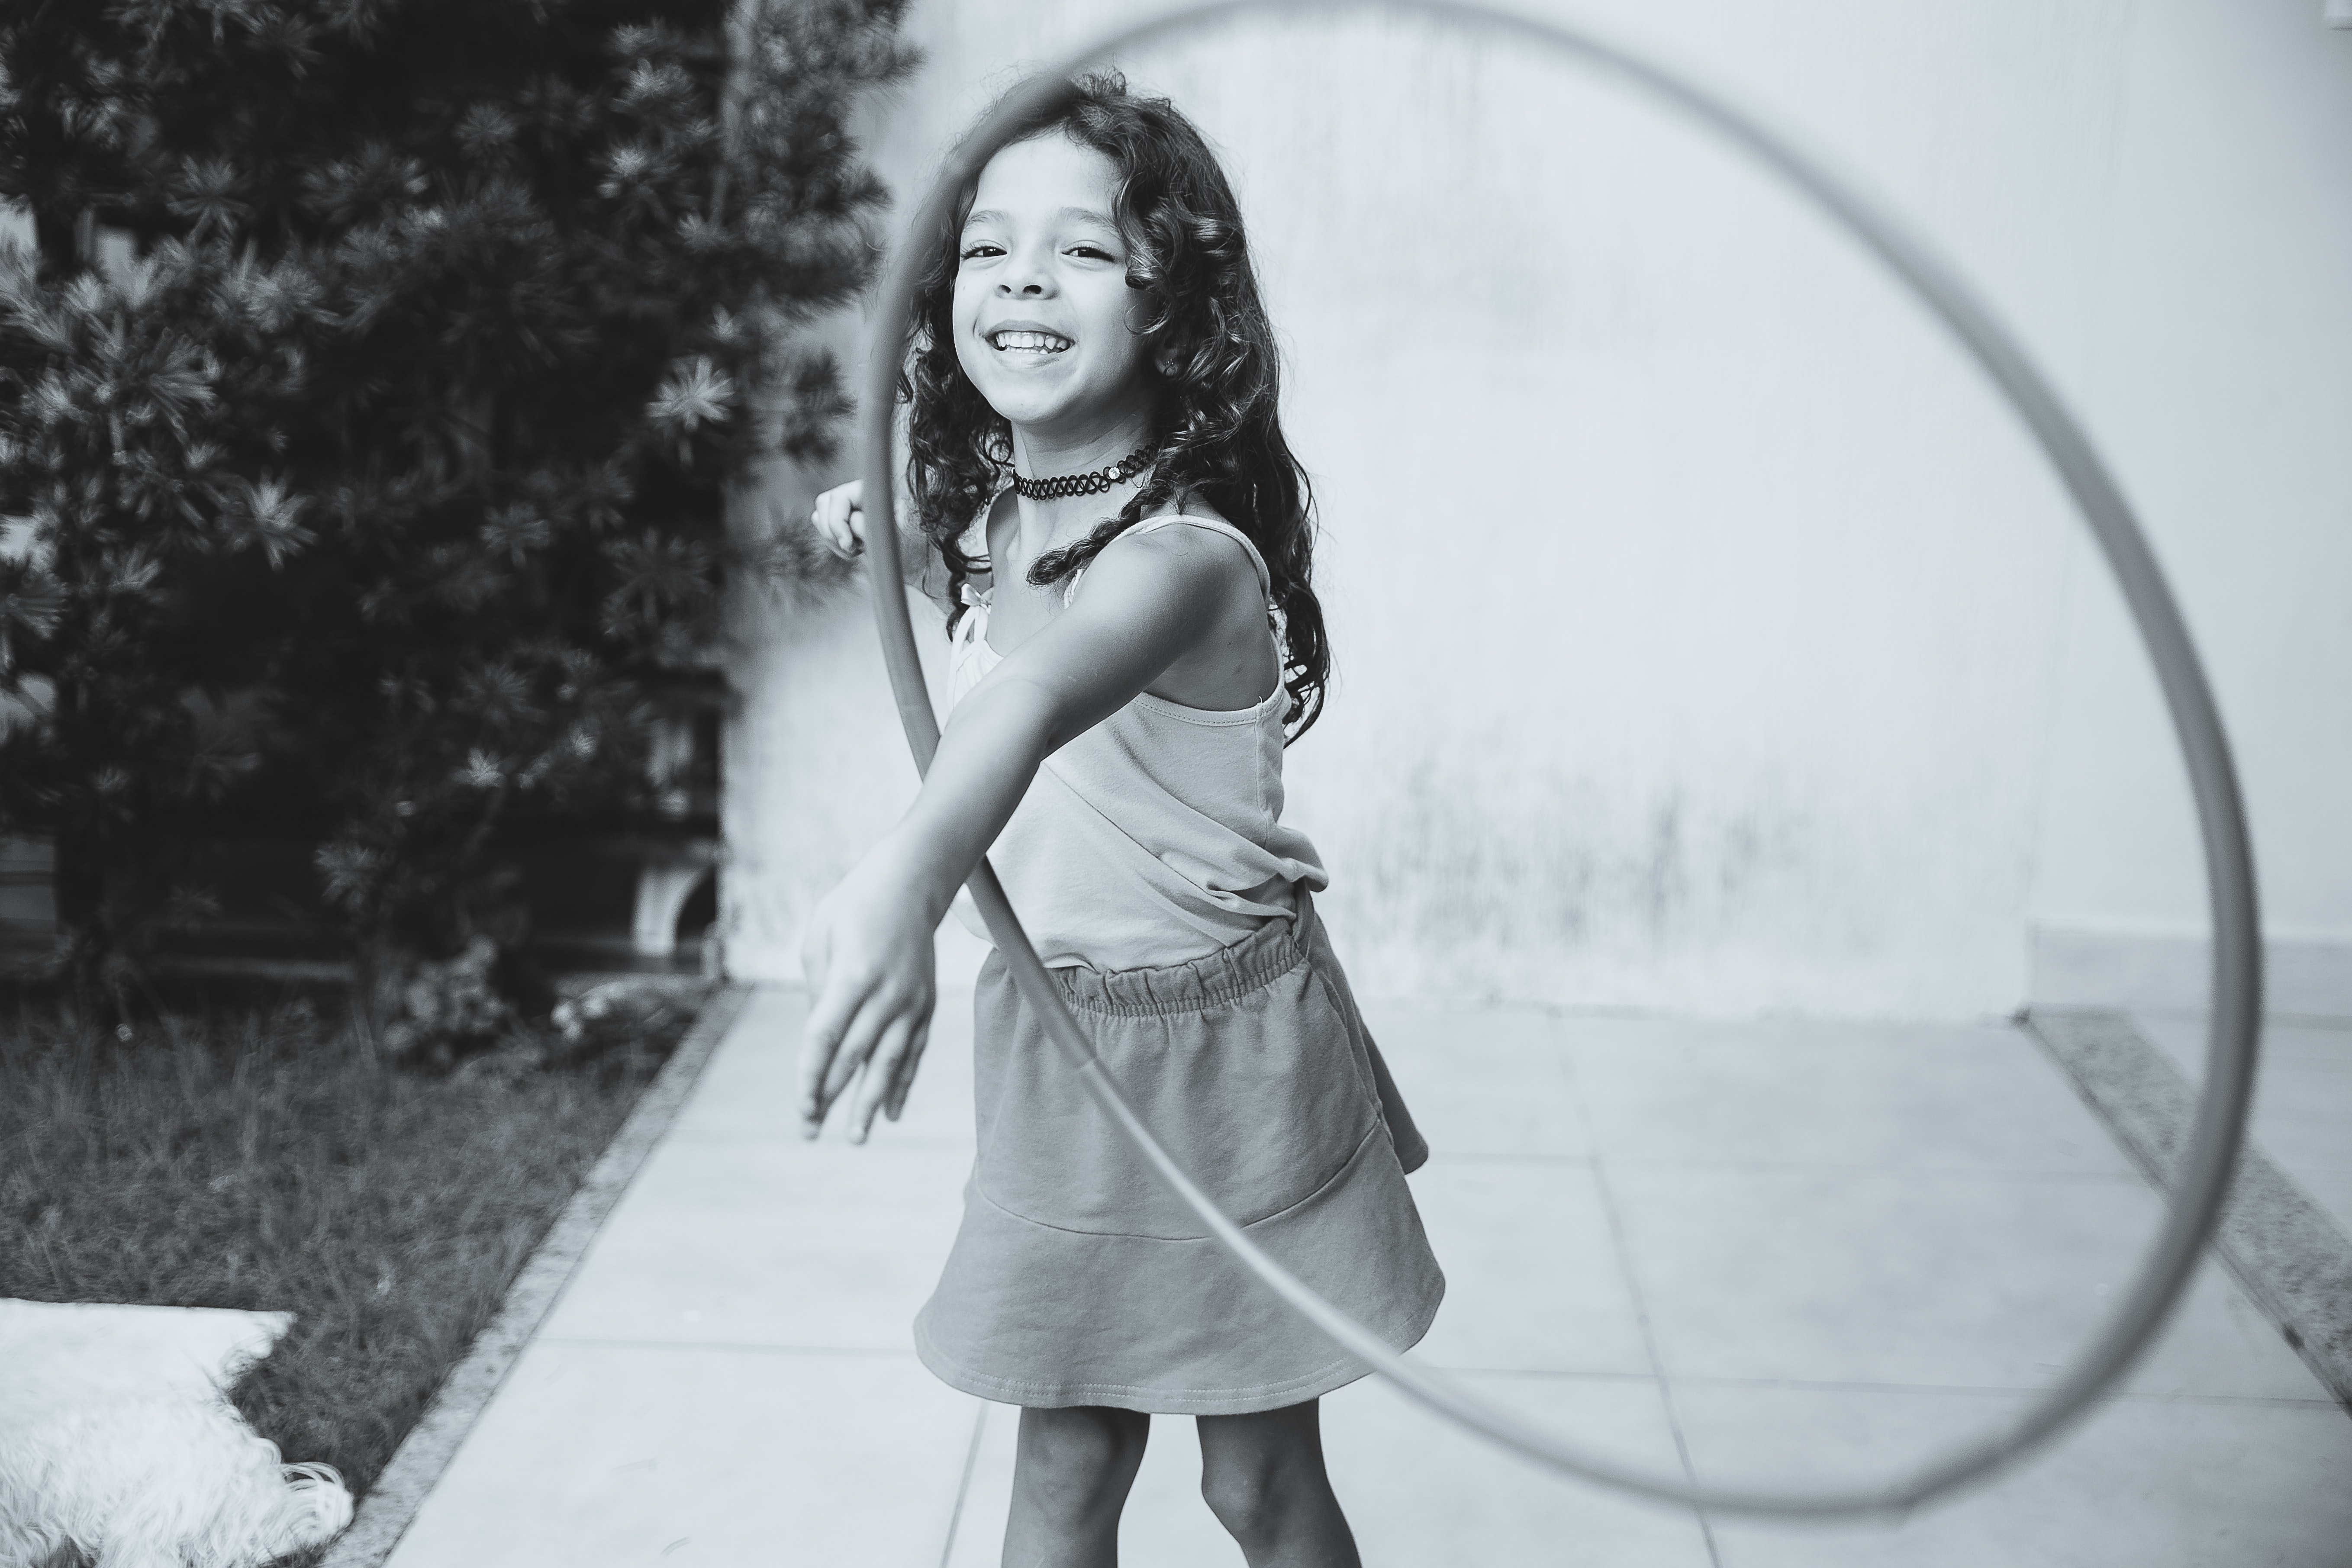 A black-and-white child playing with a hula hoop outdoors in Aracaju